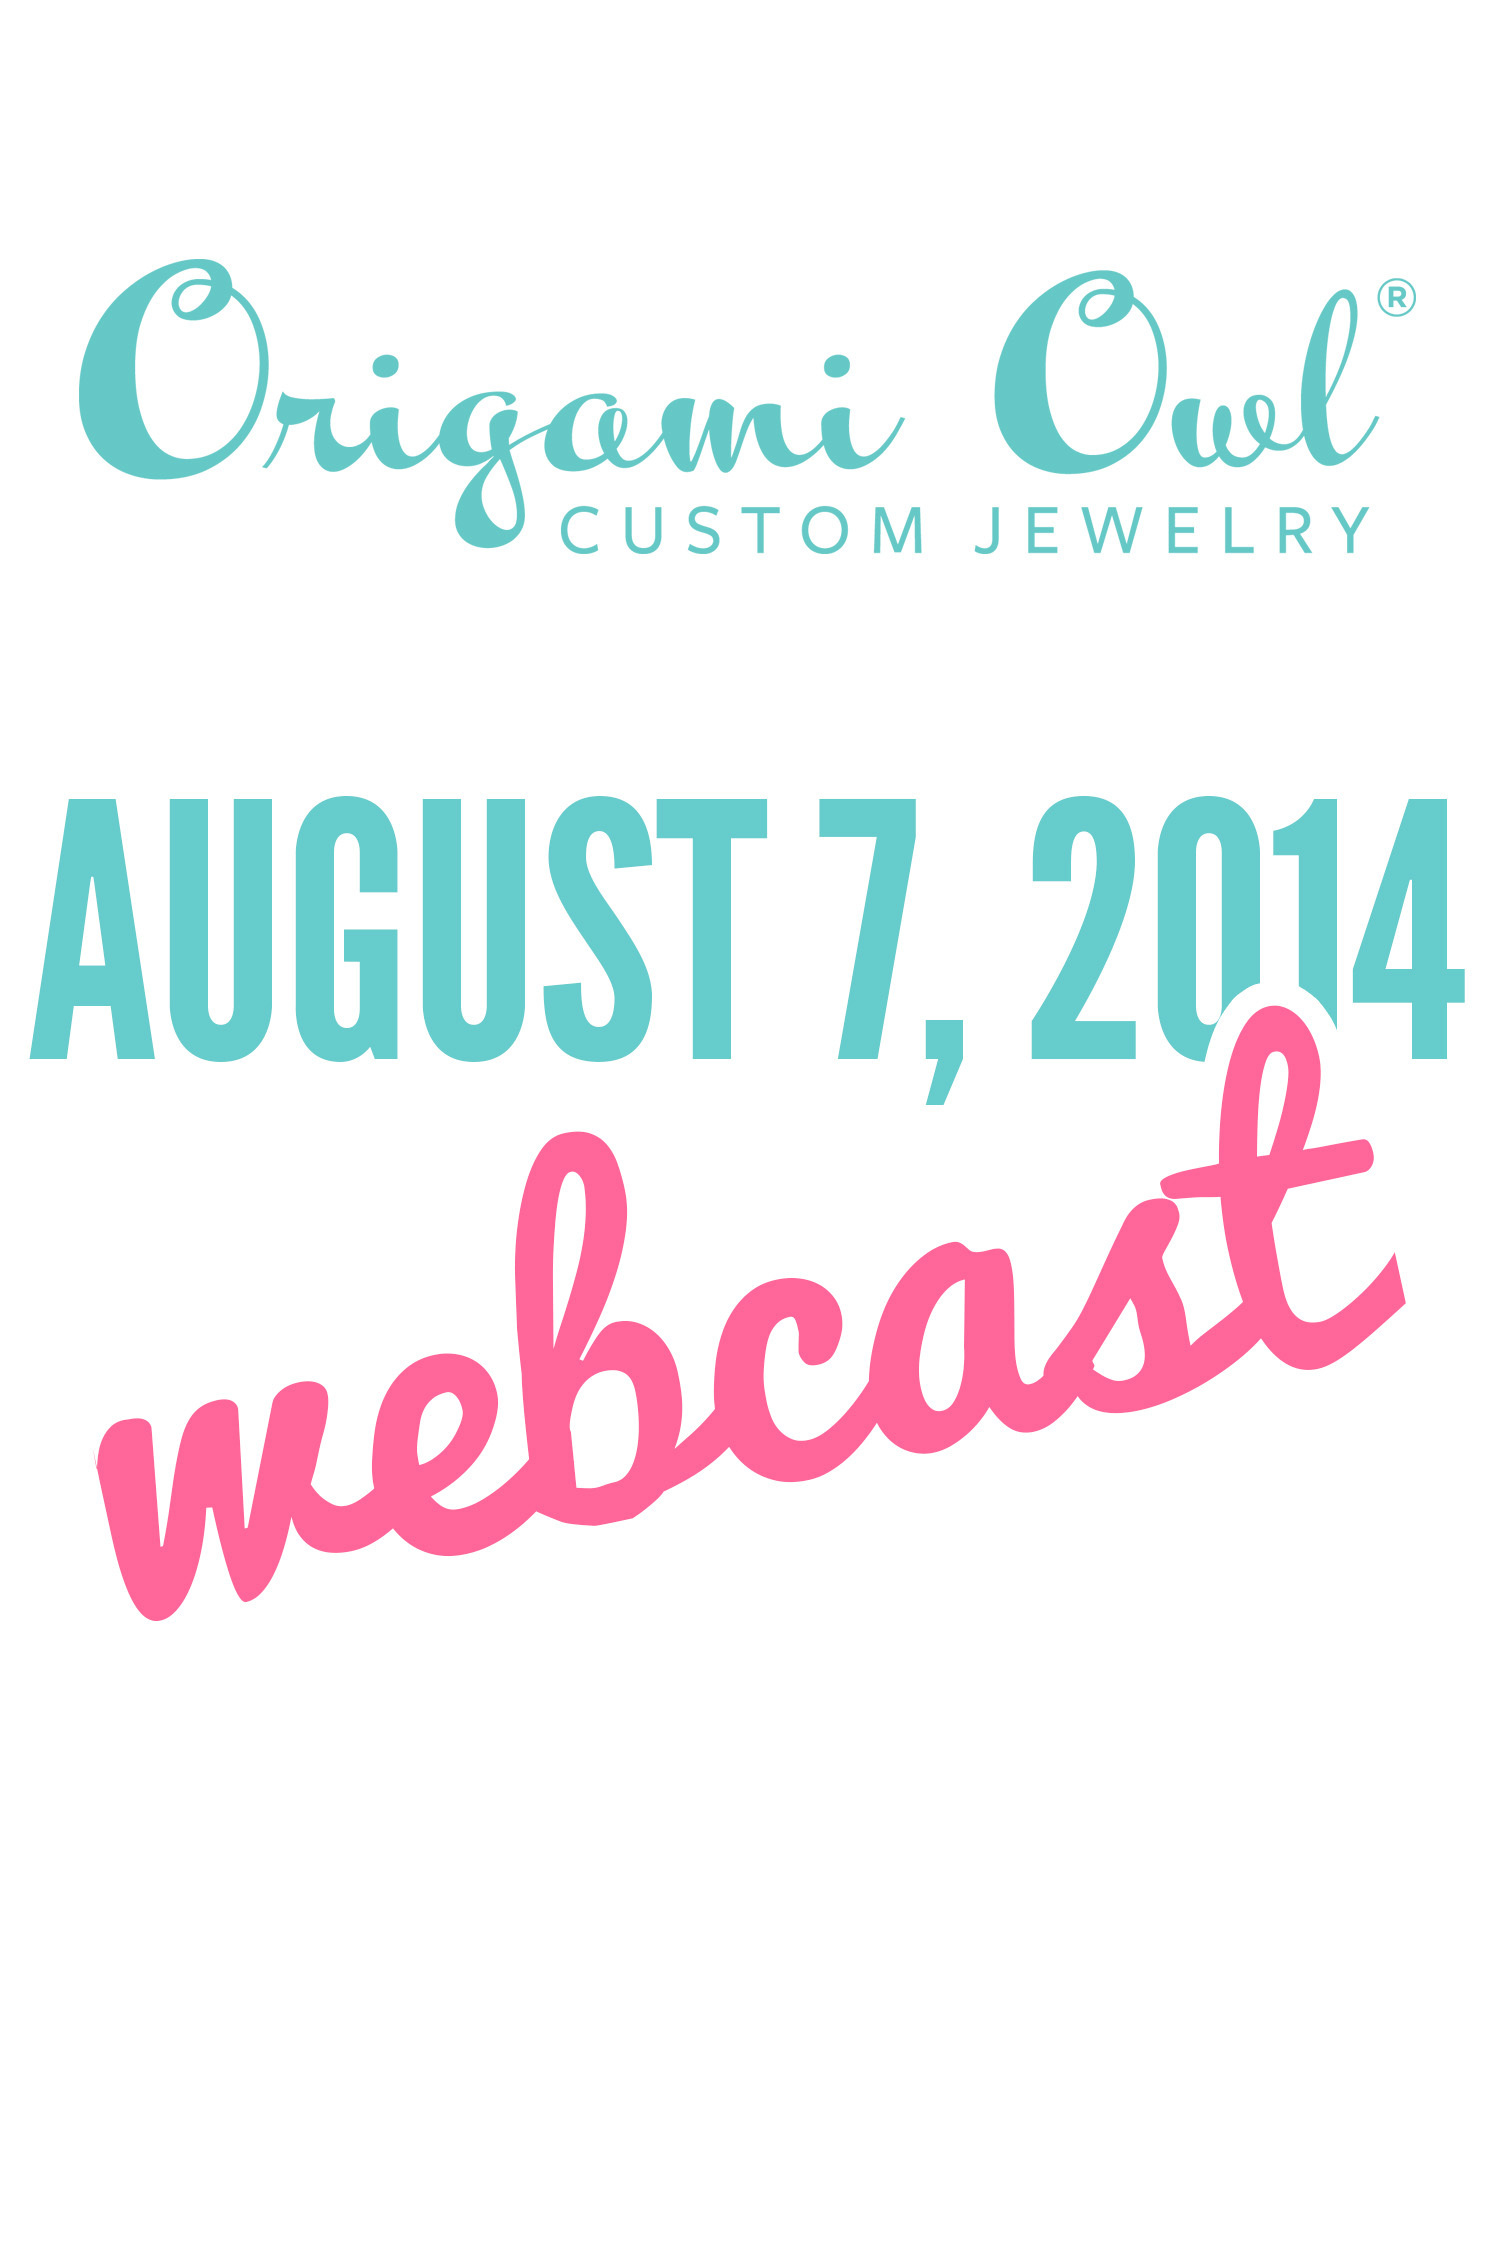 August 7, 2014 Webcast by Origami Owl